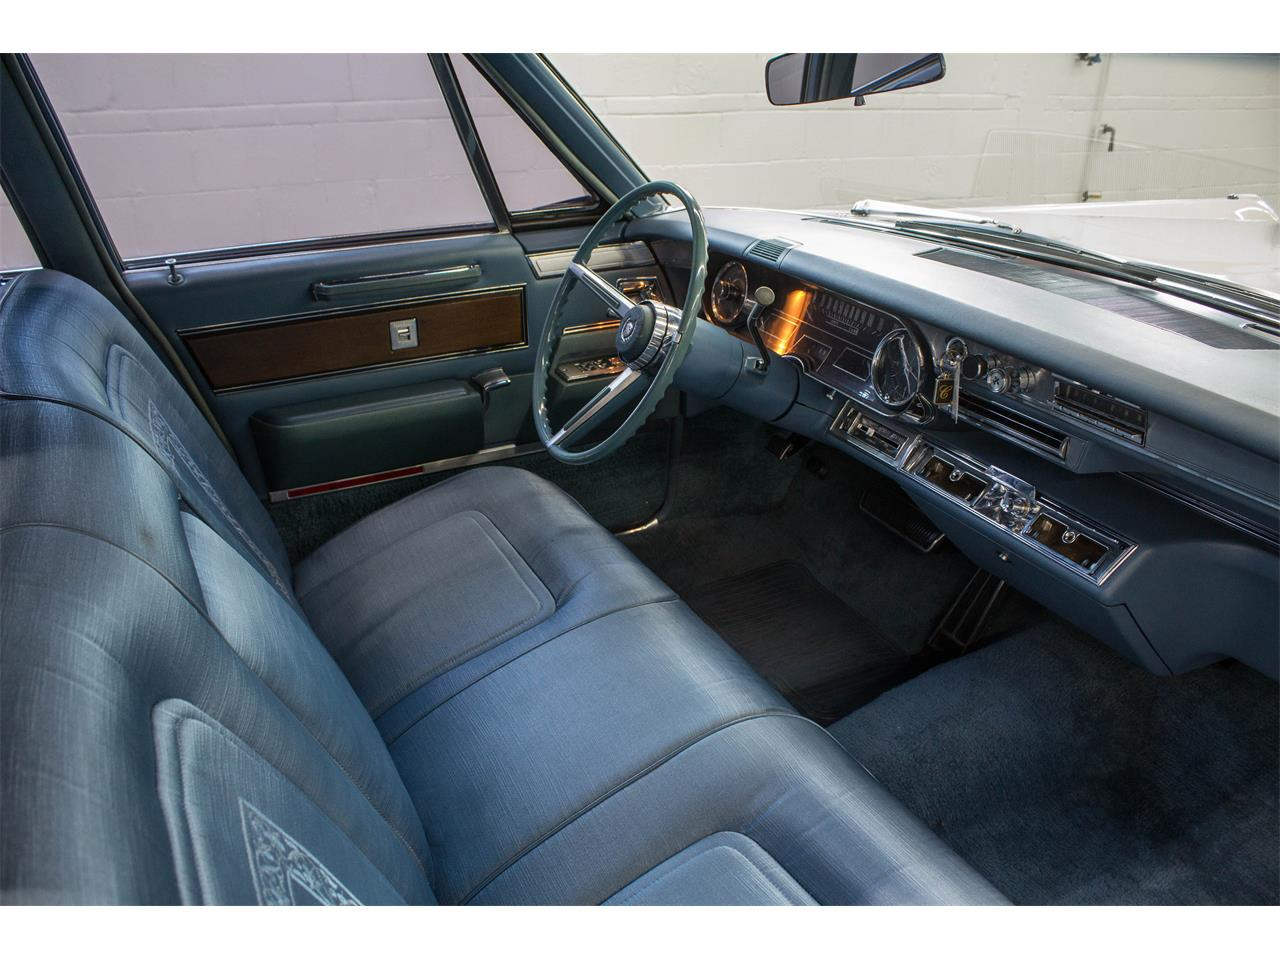 Large Picture of Classic 1966 Cadillac Fleetwood Limousine - $49,995.00 - NKXQ